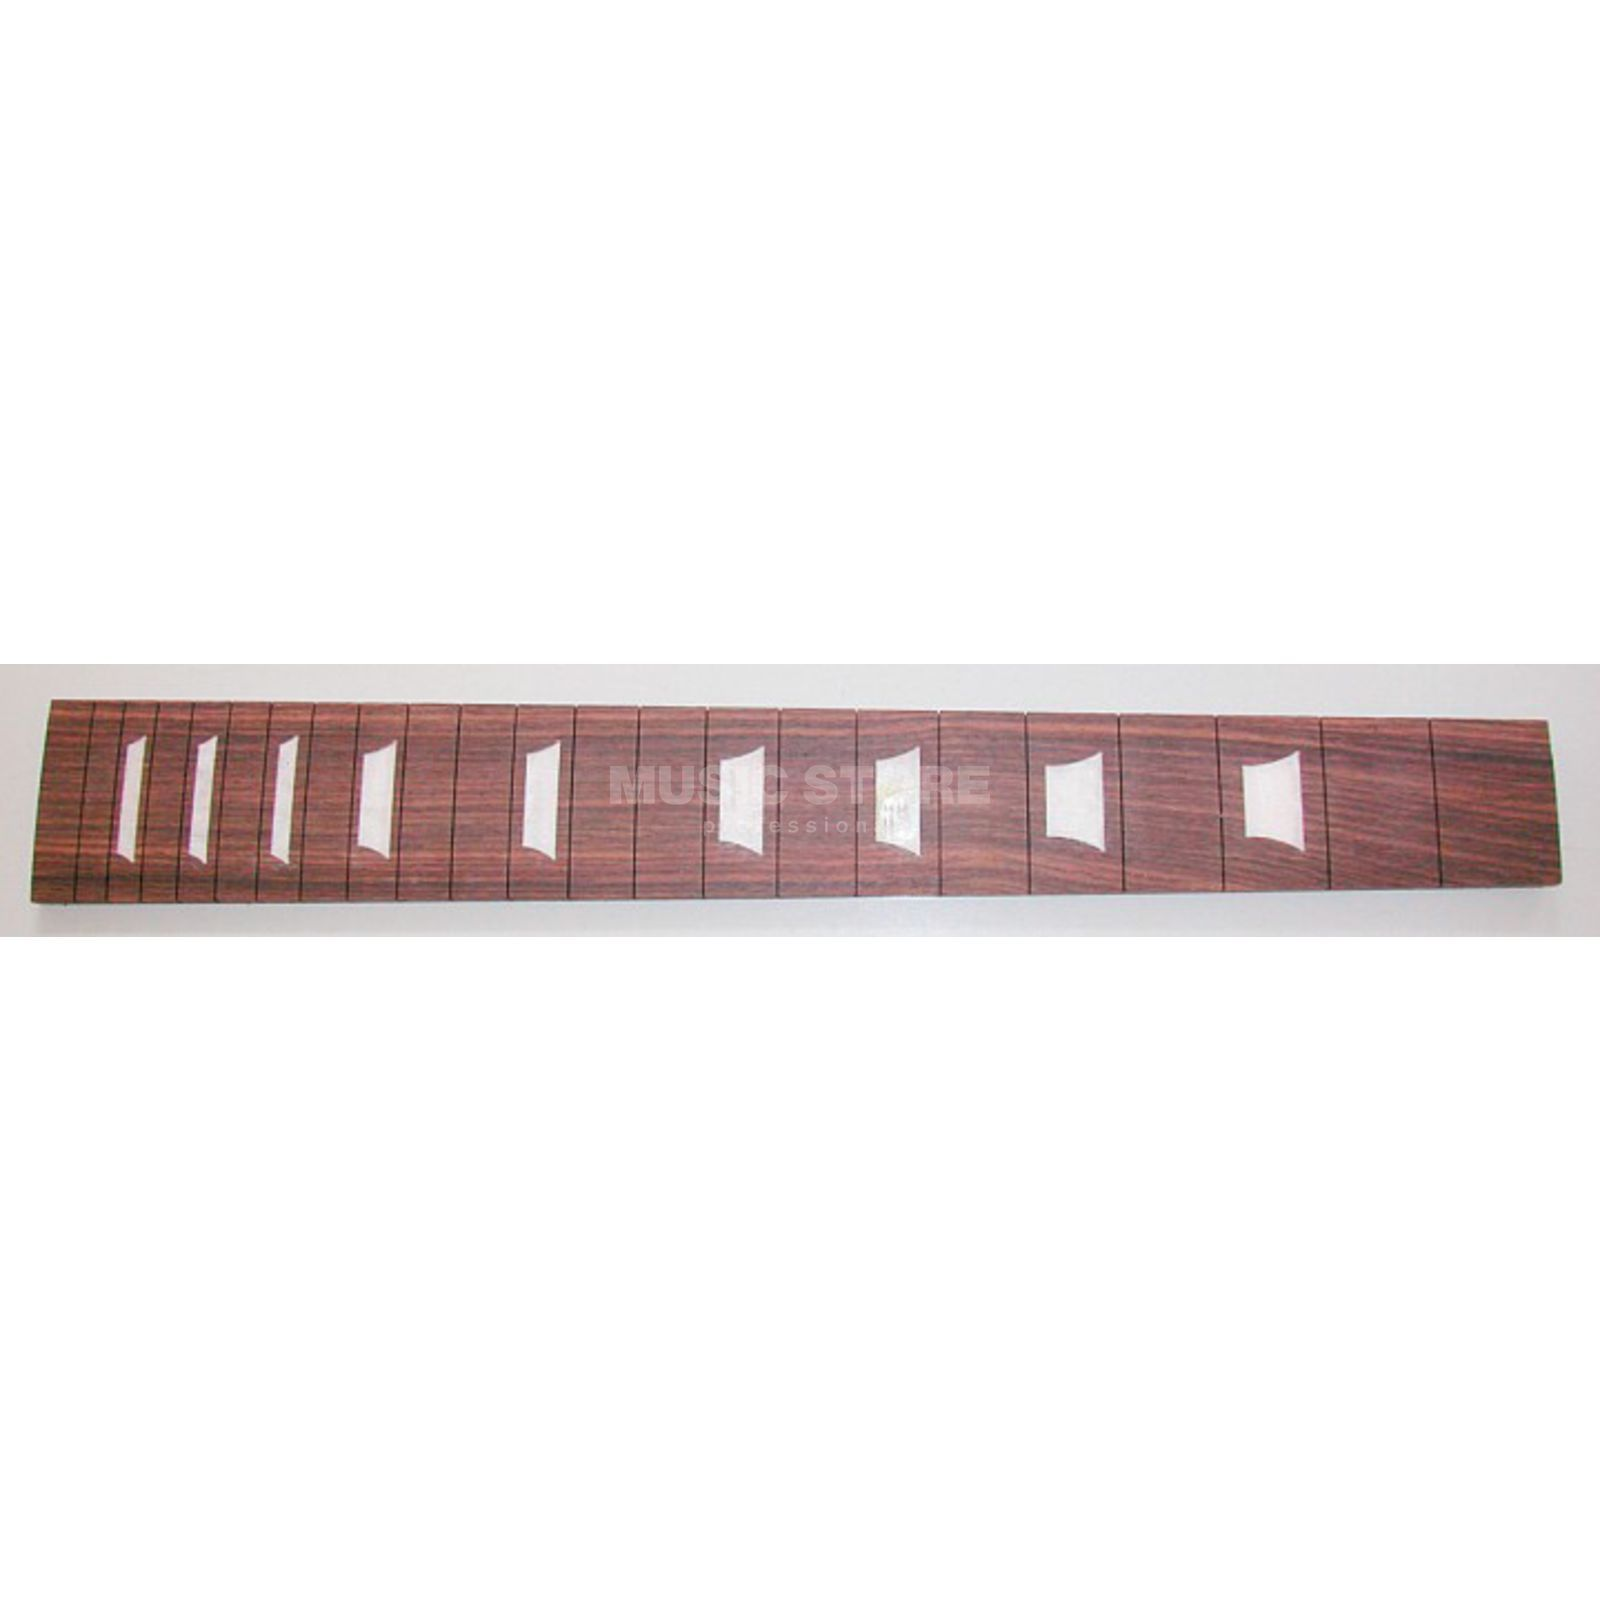 Göldo Griffbrett 24 Fret Palisander 629 mm, Crown Inlays Produktbild